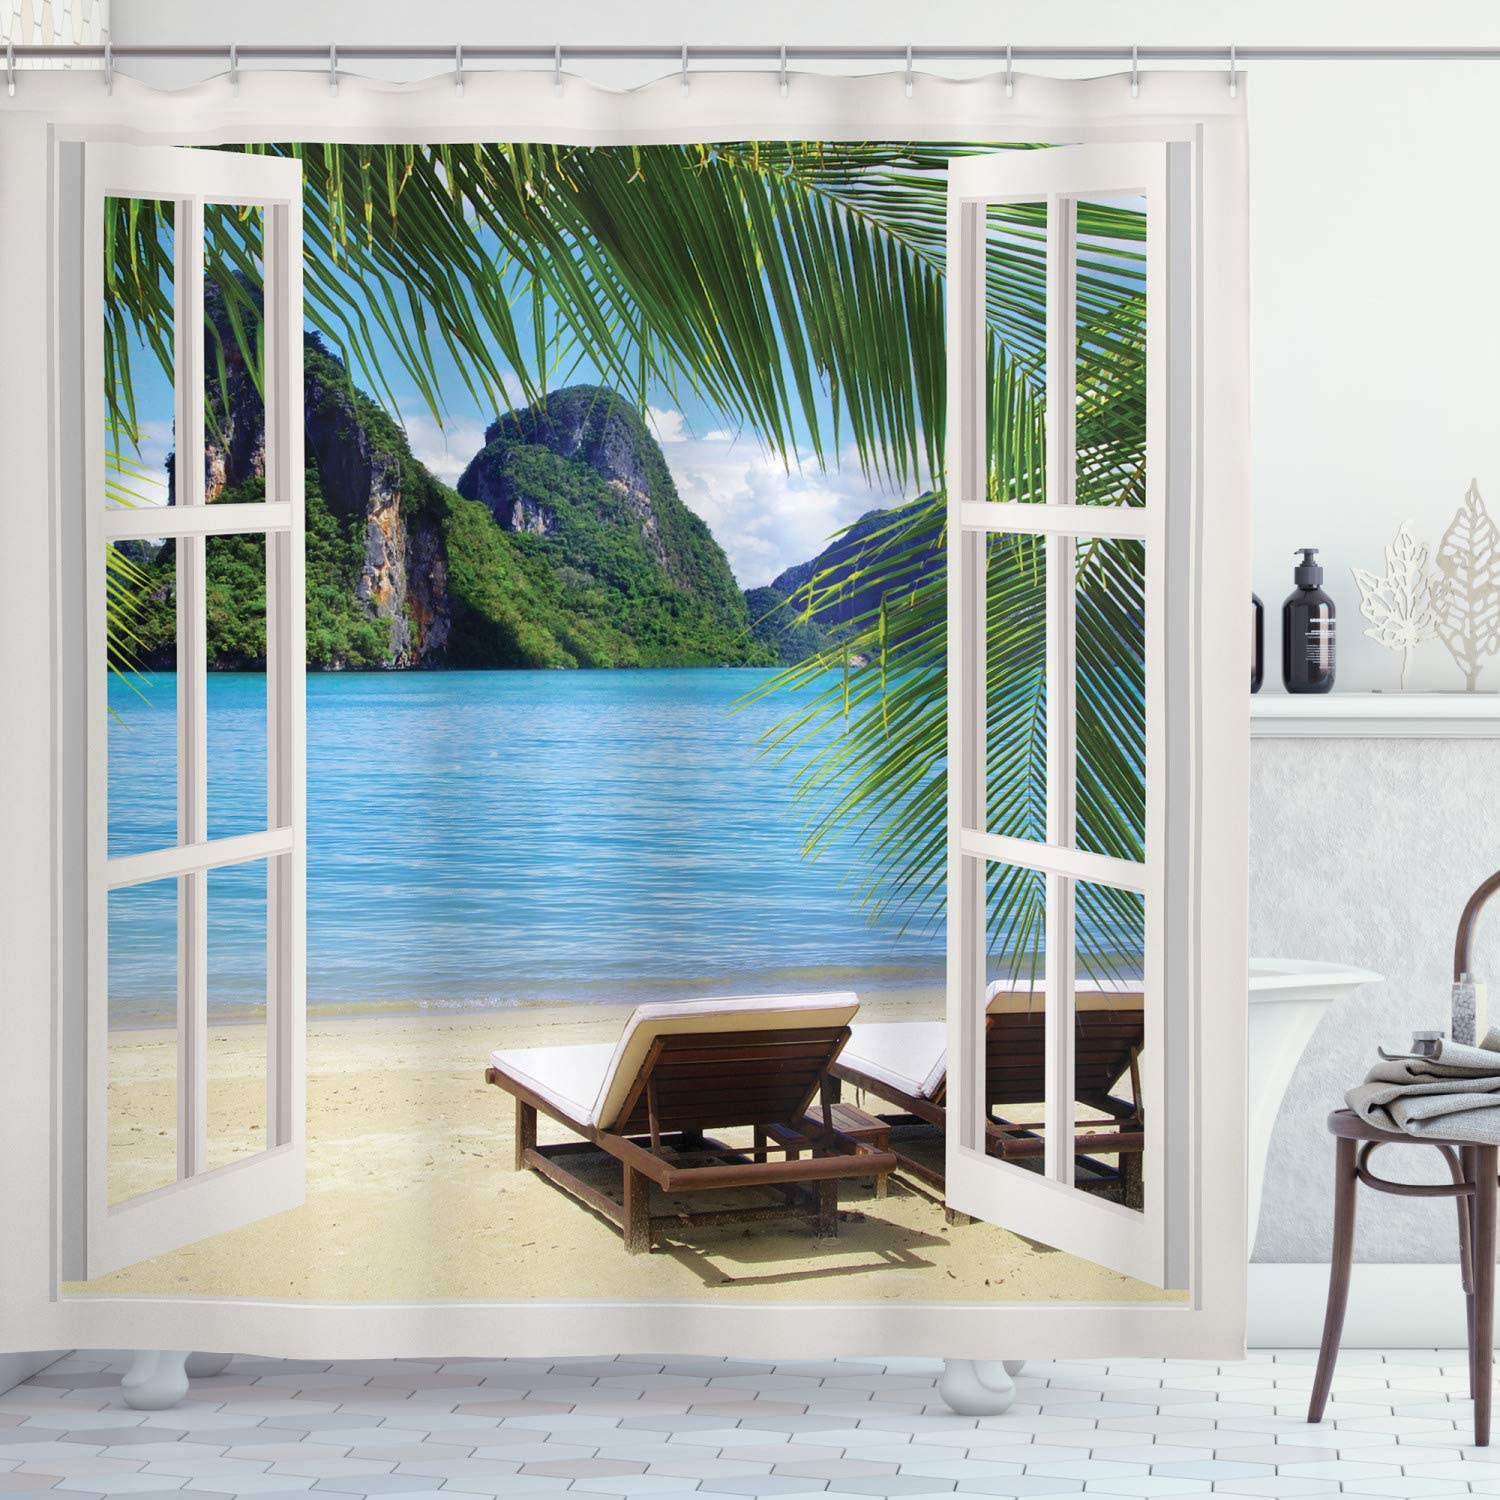 Ambesonne Beach Shower Curtain, Palm Trees in Ocean Heaven Sunbeds Balcony White Wooden Windows Summer Tropical, Cloth Fabric Bathroom Decor Set with Hooks, 70